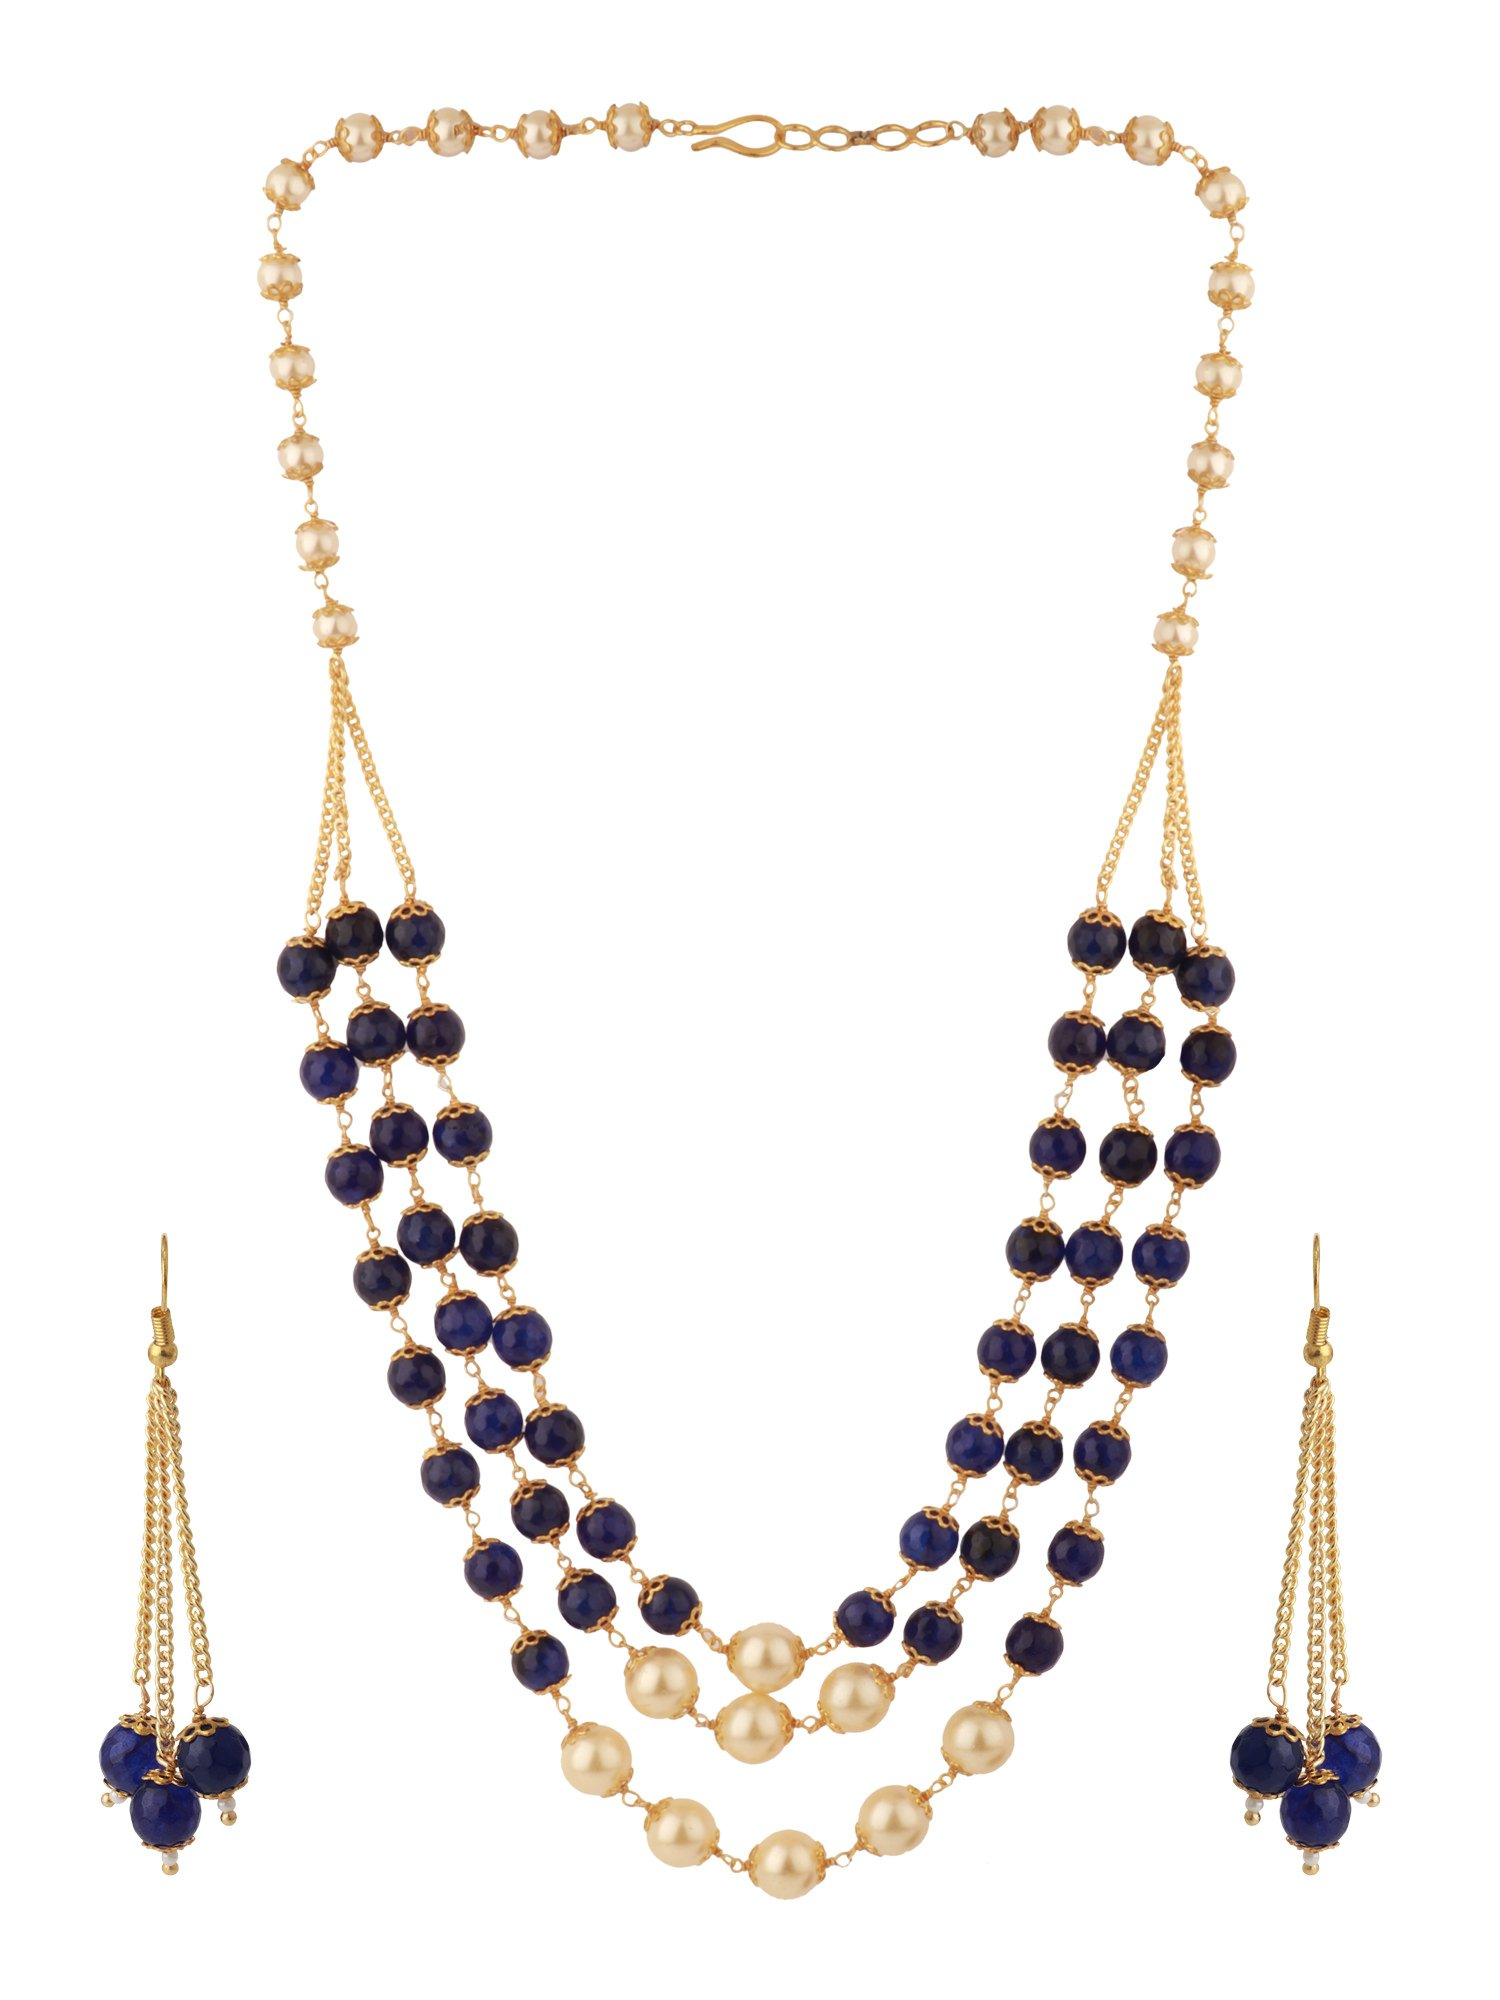 Efulgenz Indian Multi Layered Blue Faux Sapphire Pearl Beads Wedding Bridal Necklace Earrings Jewelry Set